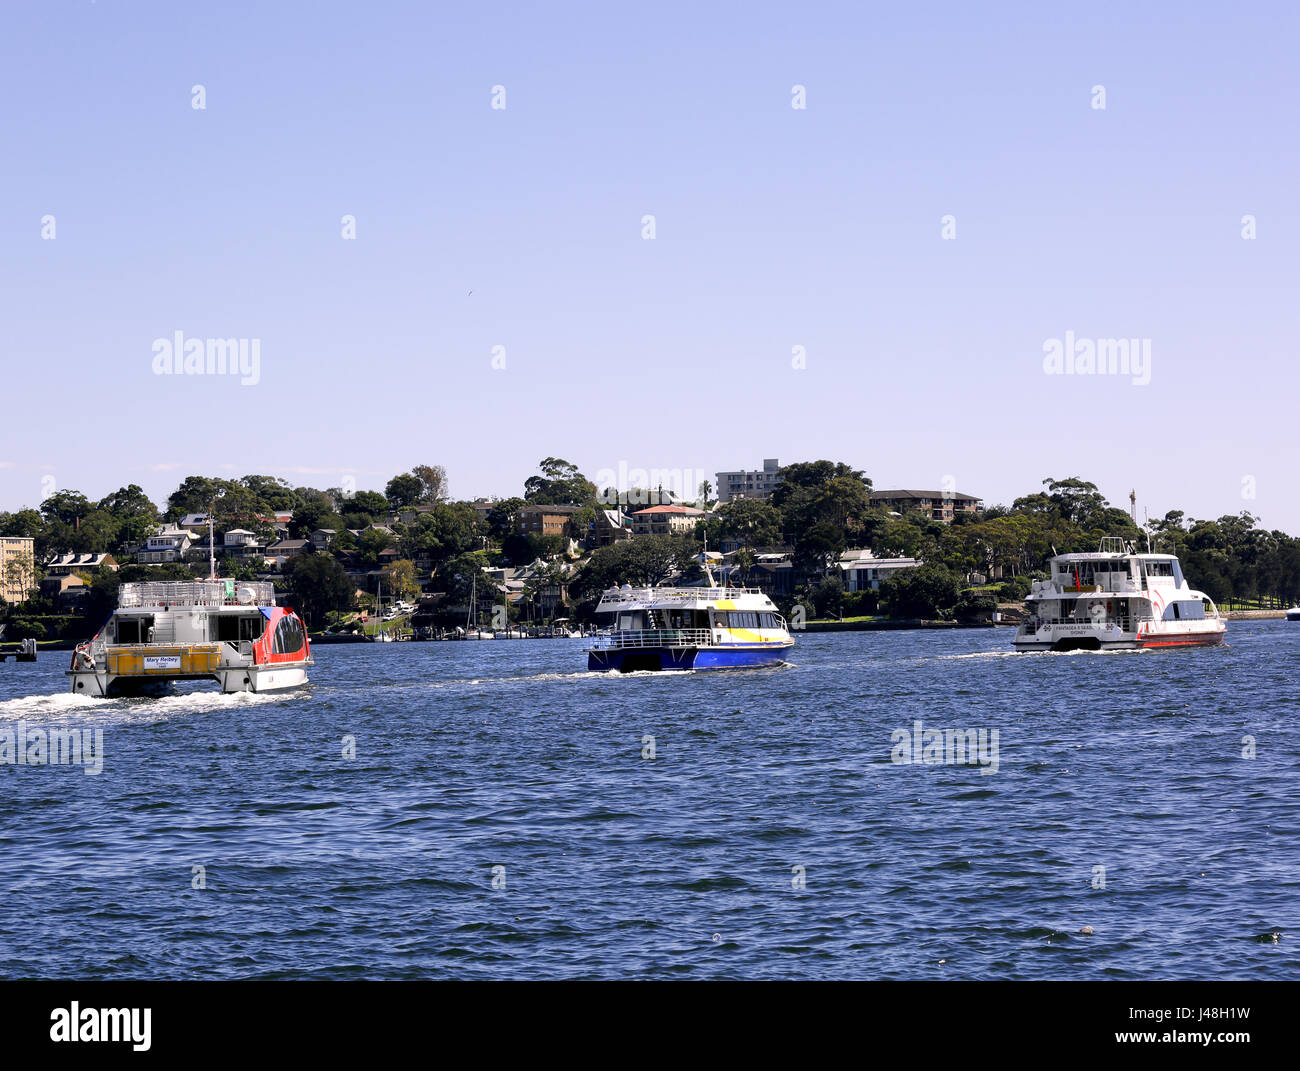 Three siteseeing/cruise boats leaving Darling Harbour, Sydney - Stock Image